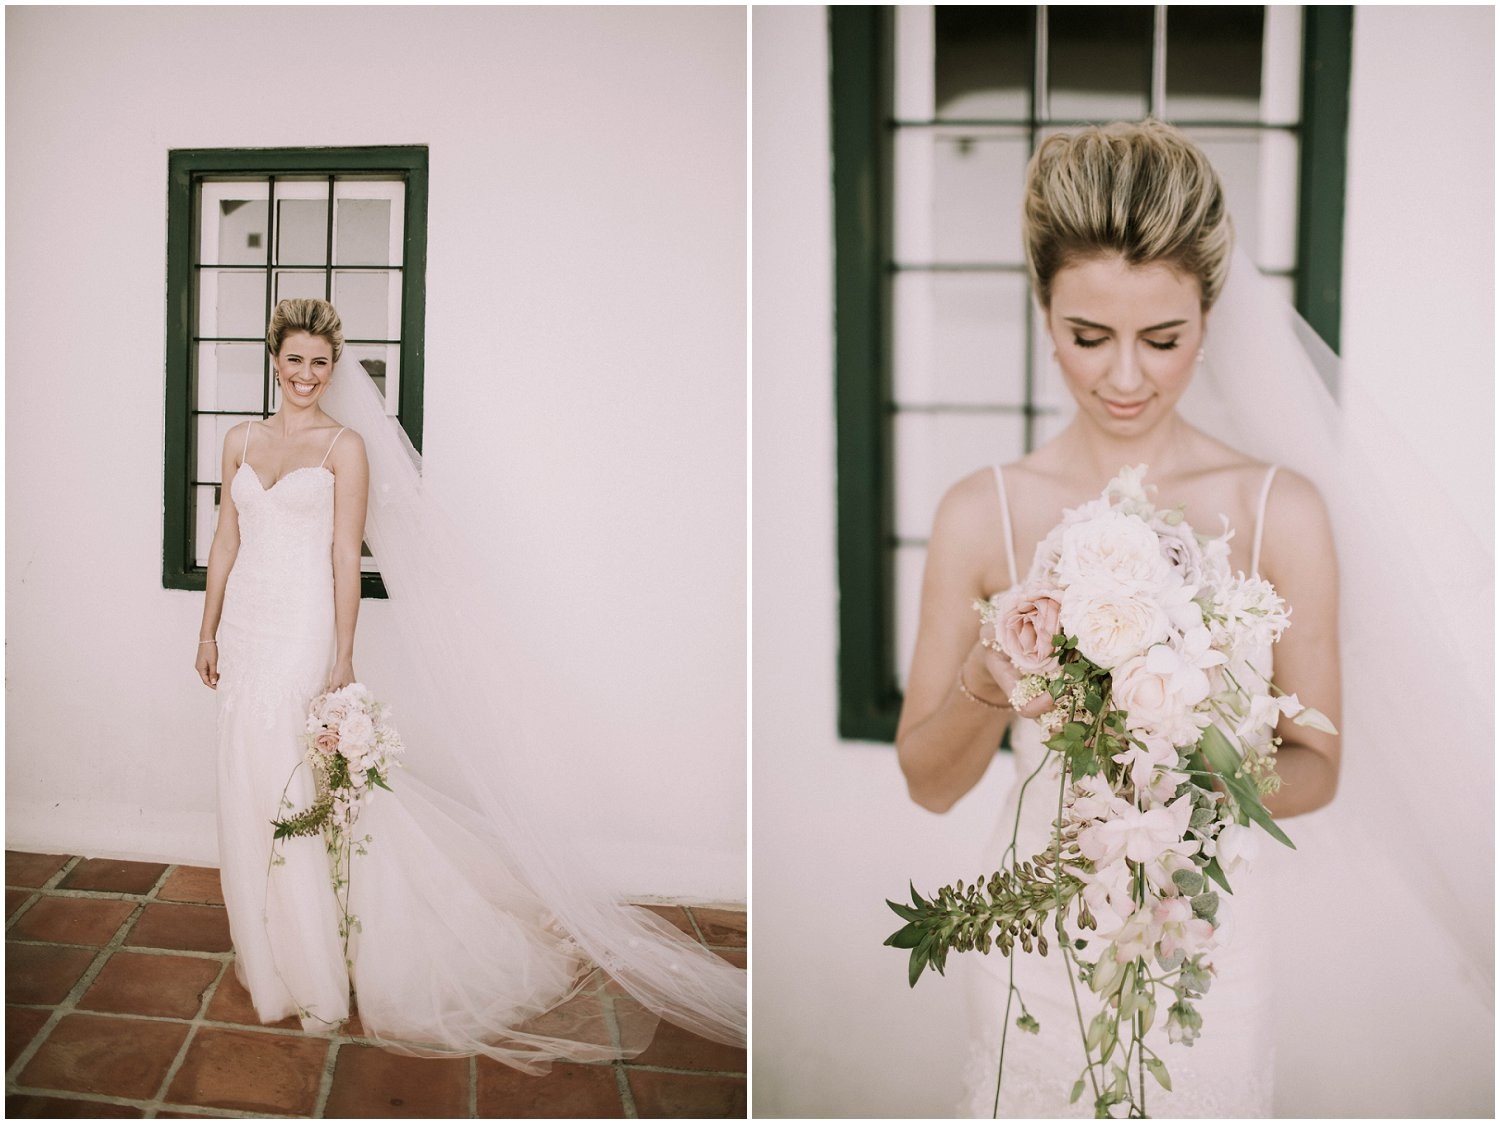 Top Artistic Documentary Wedding Photographer Cape Town South Africa Rue Kruger_0084.jpg